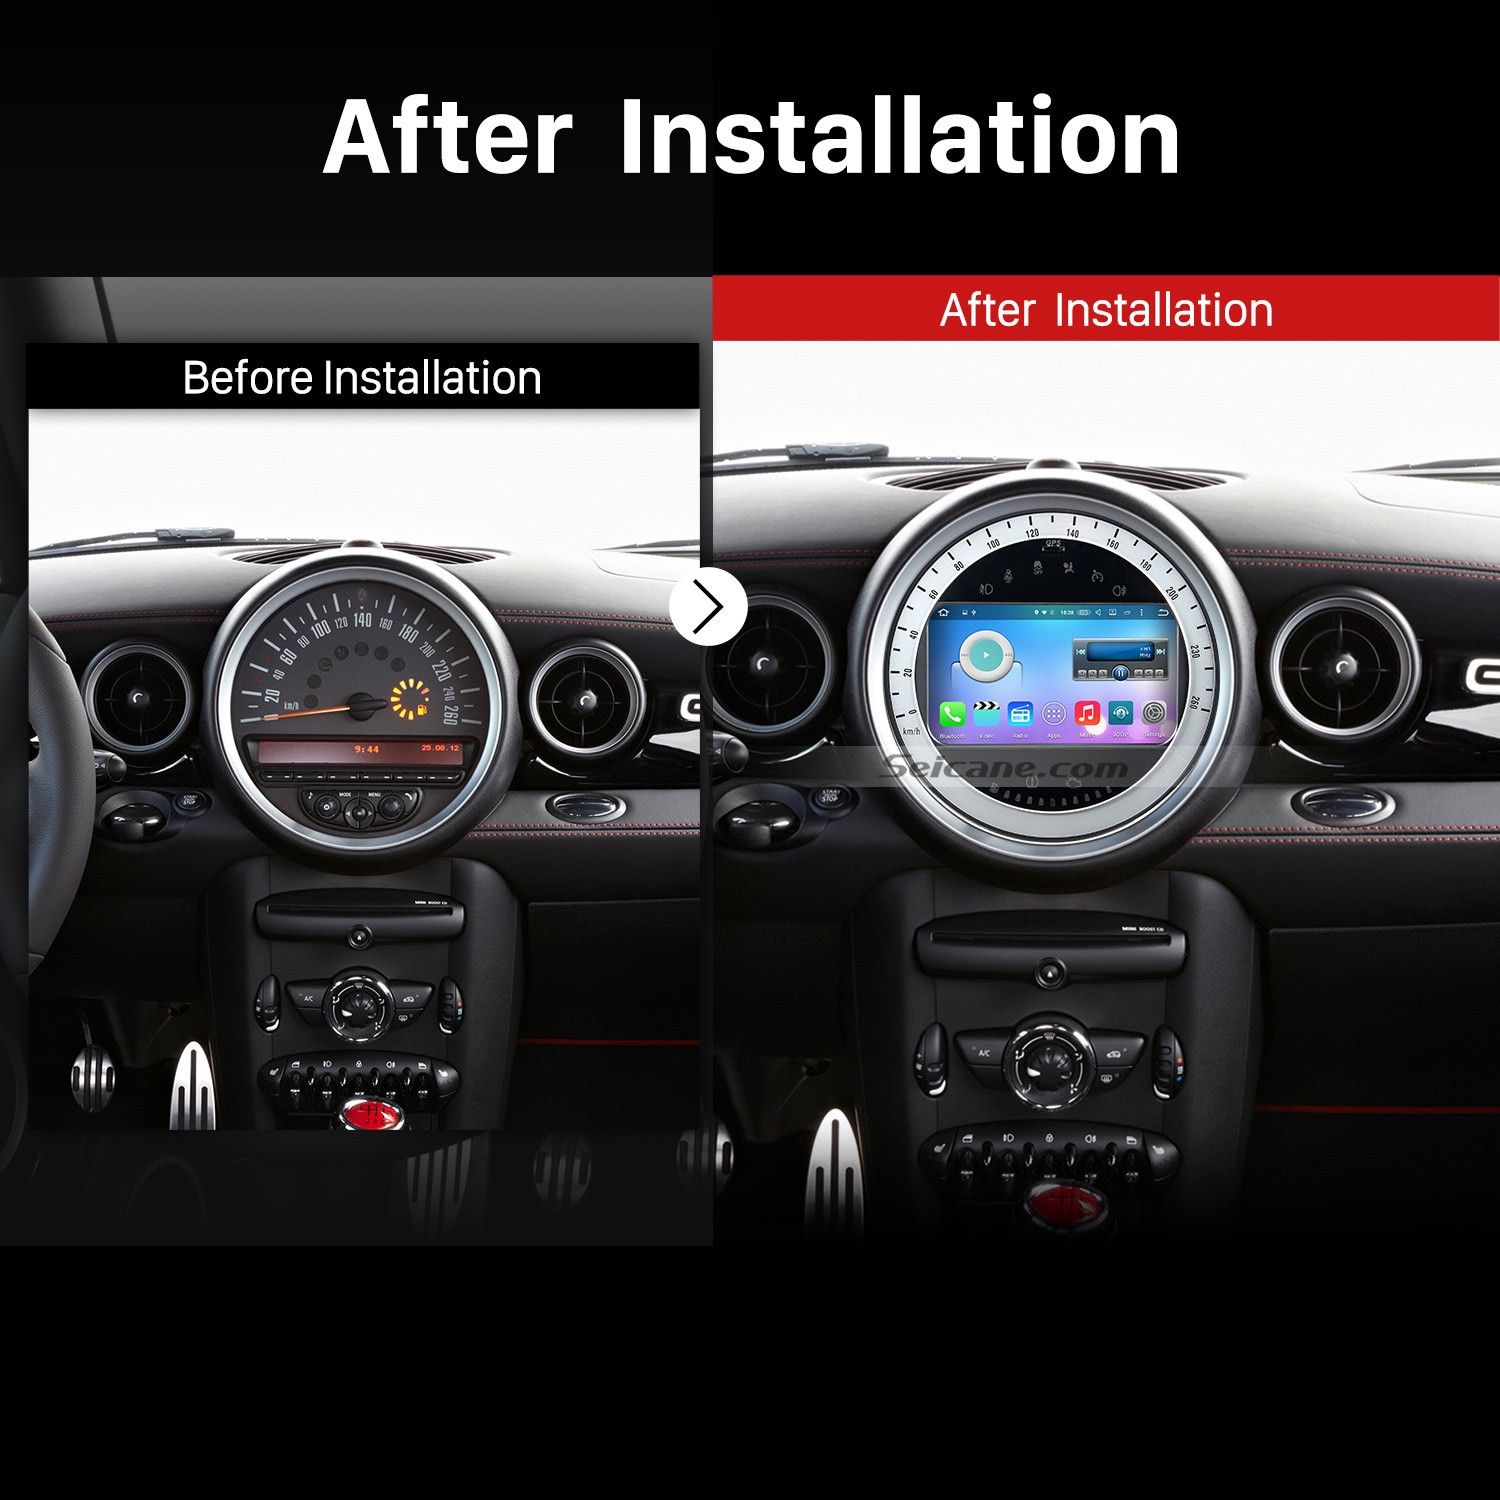 2010 mini cooper radio manual open source user manual u2022 rh dramatic varieties com Sony Car Stereo Drive S Manual Pioneer Car Stereo User Manual